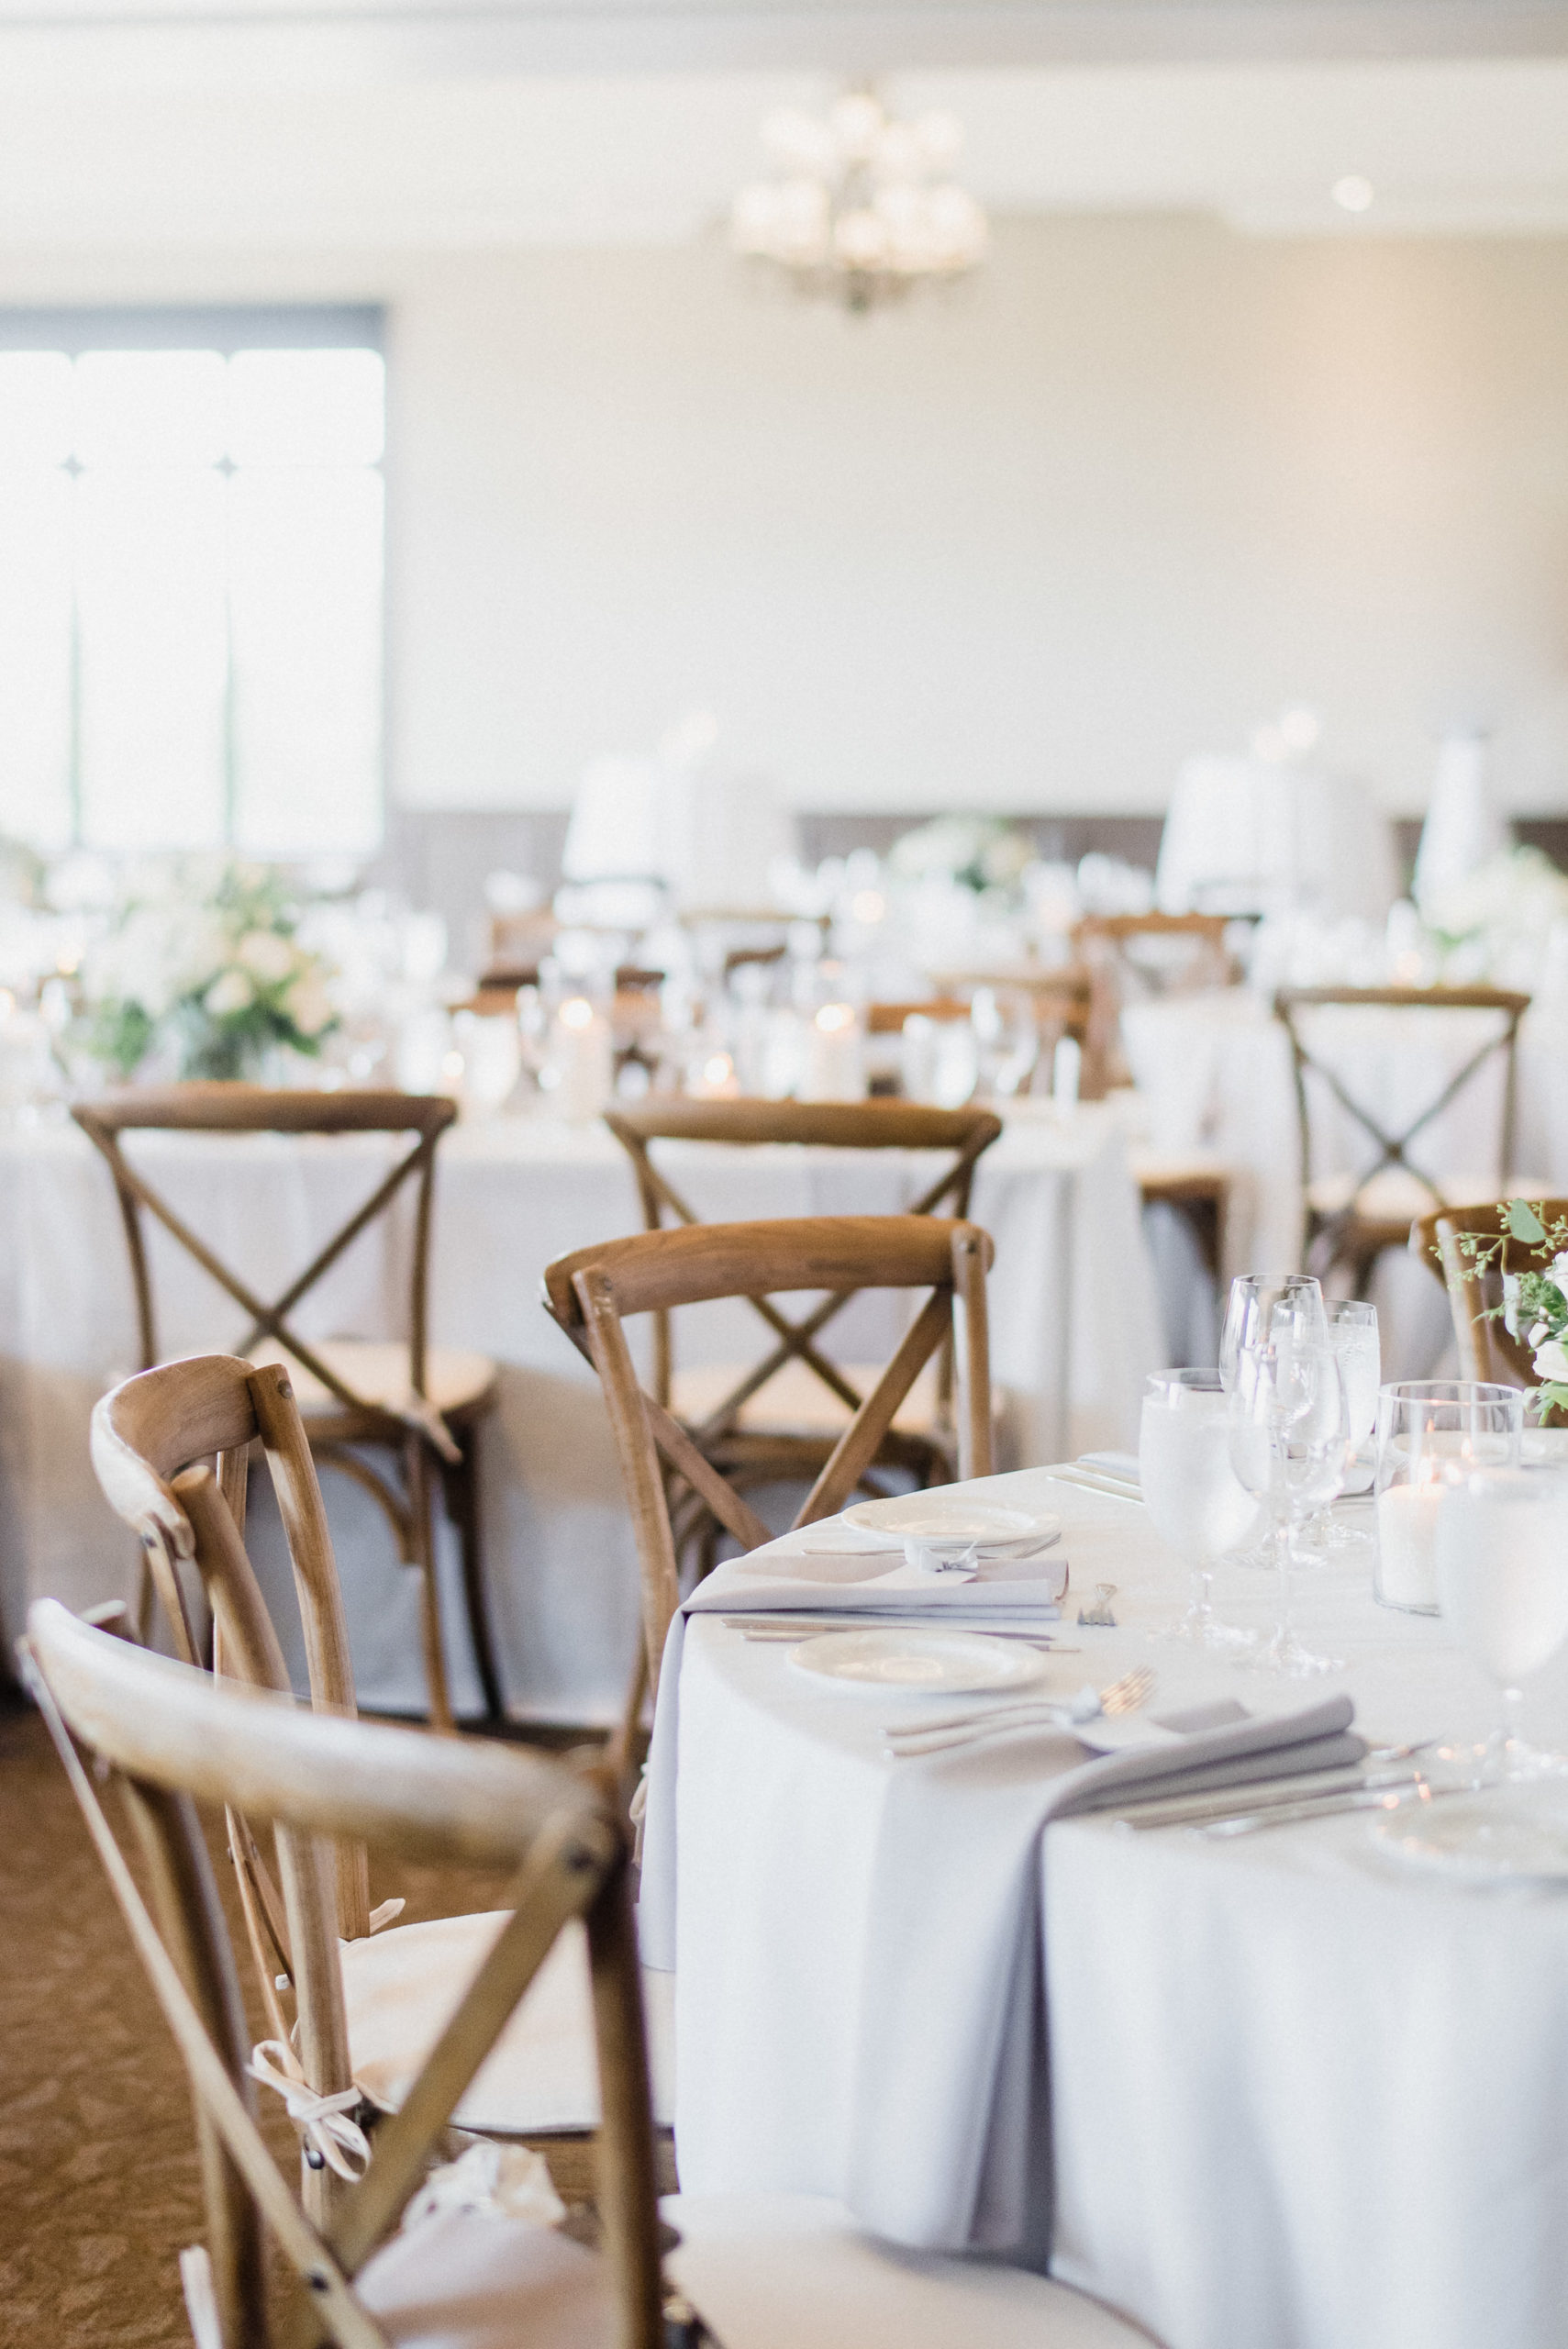 Crossback Chairs | Elegant and simple Barrie wedding by Jenn Kavanagh Photography